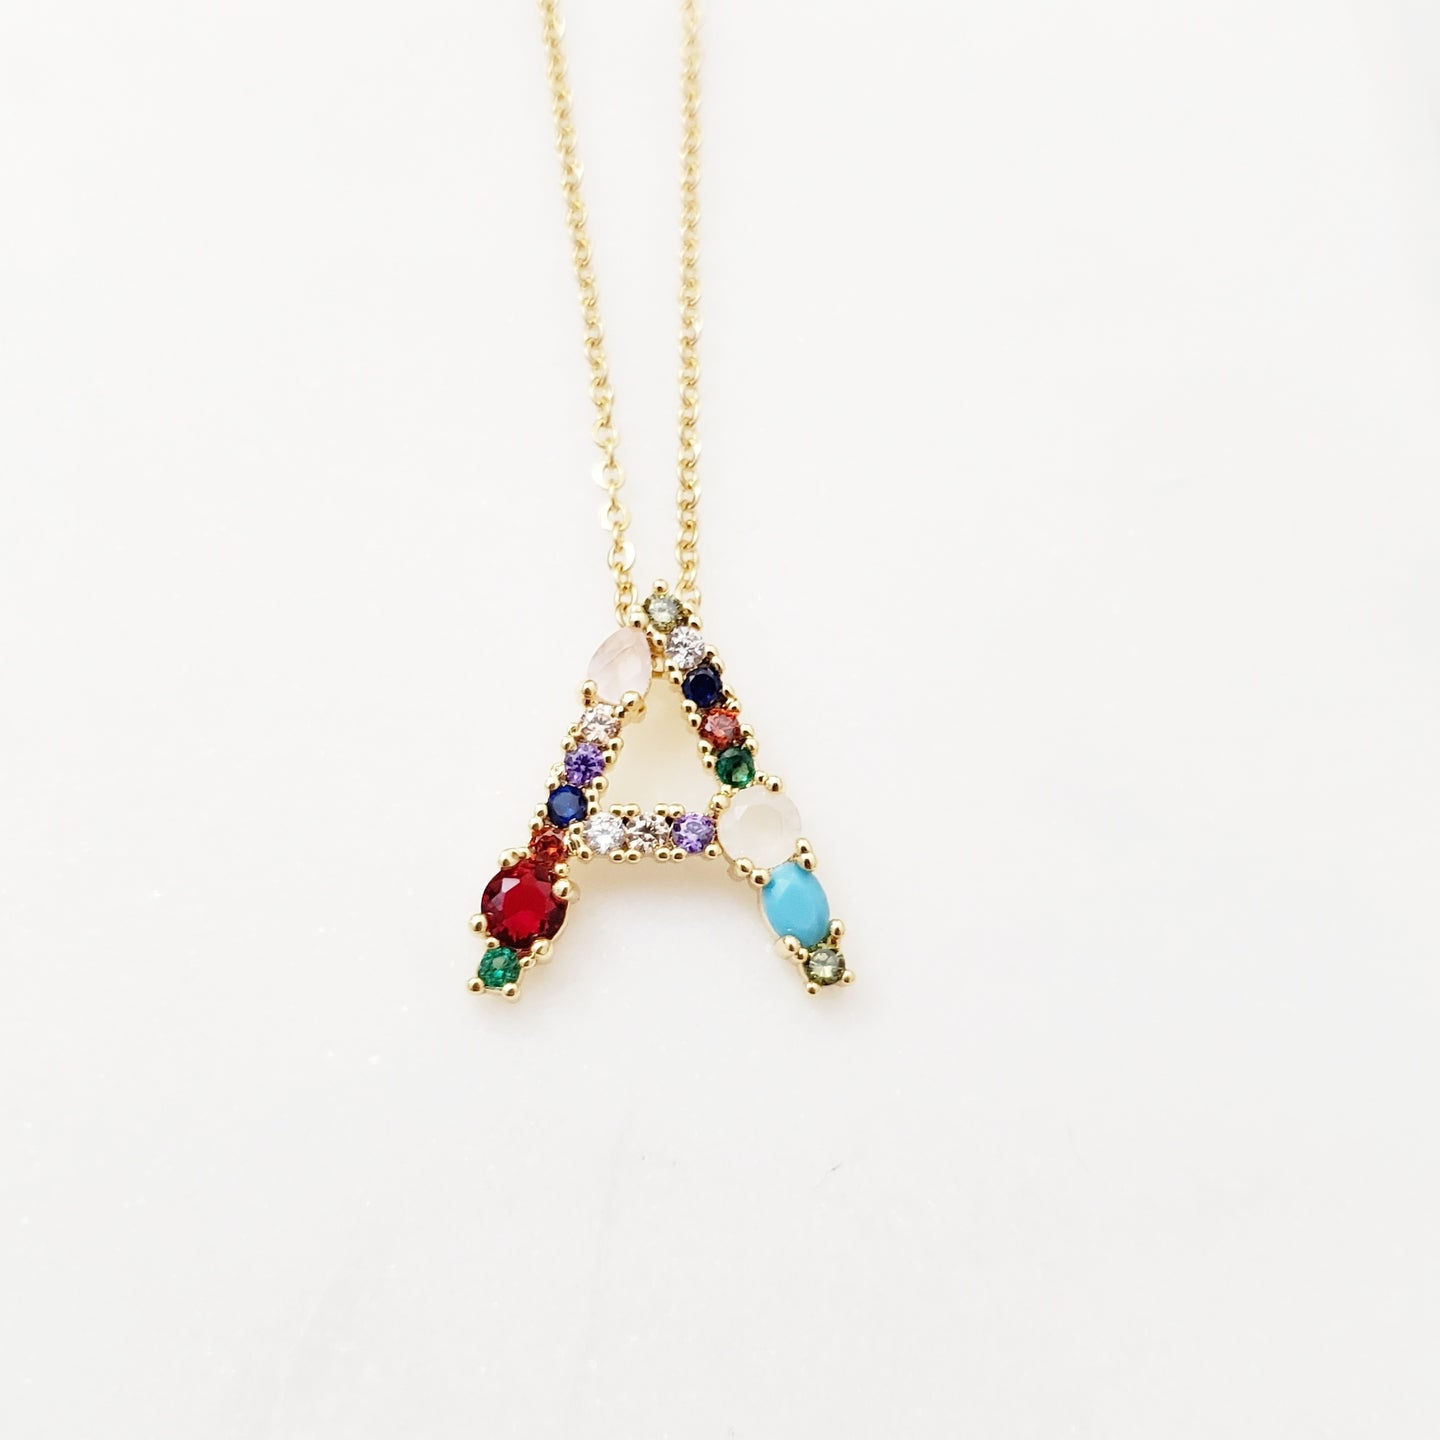 Crystal Initial Letter Necklace